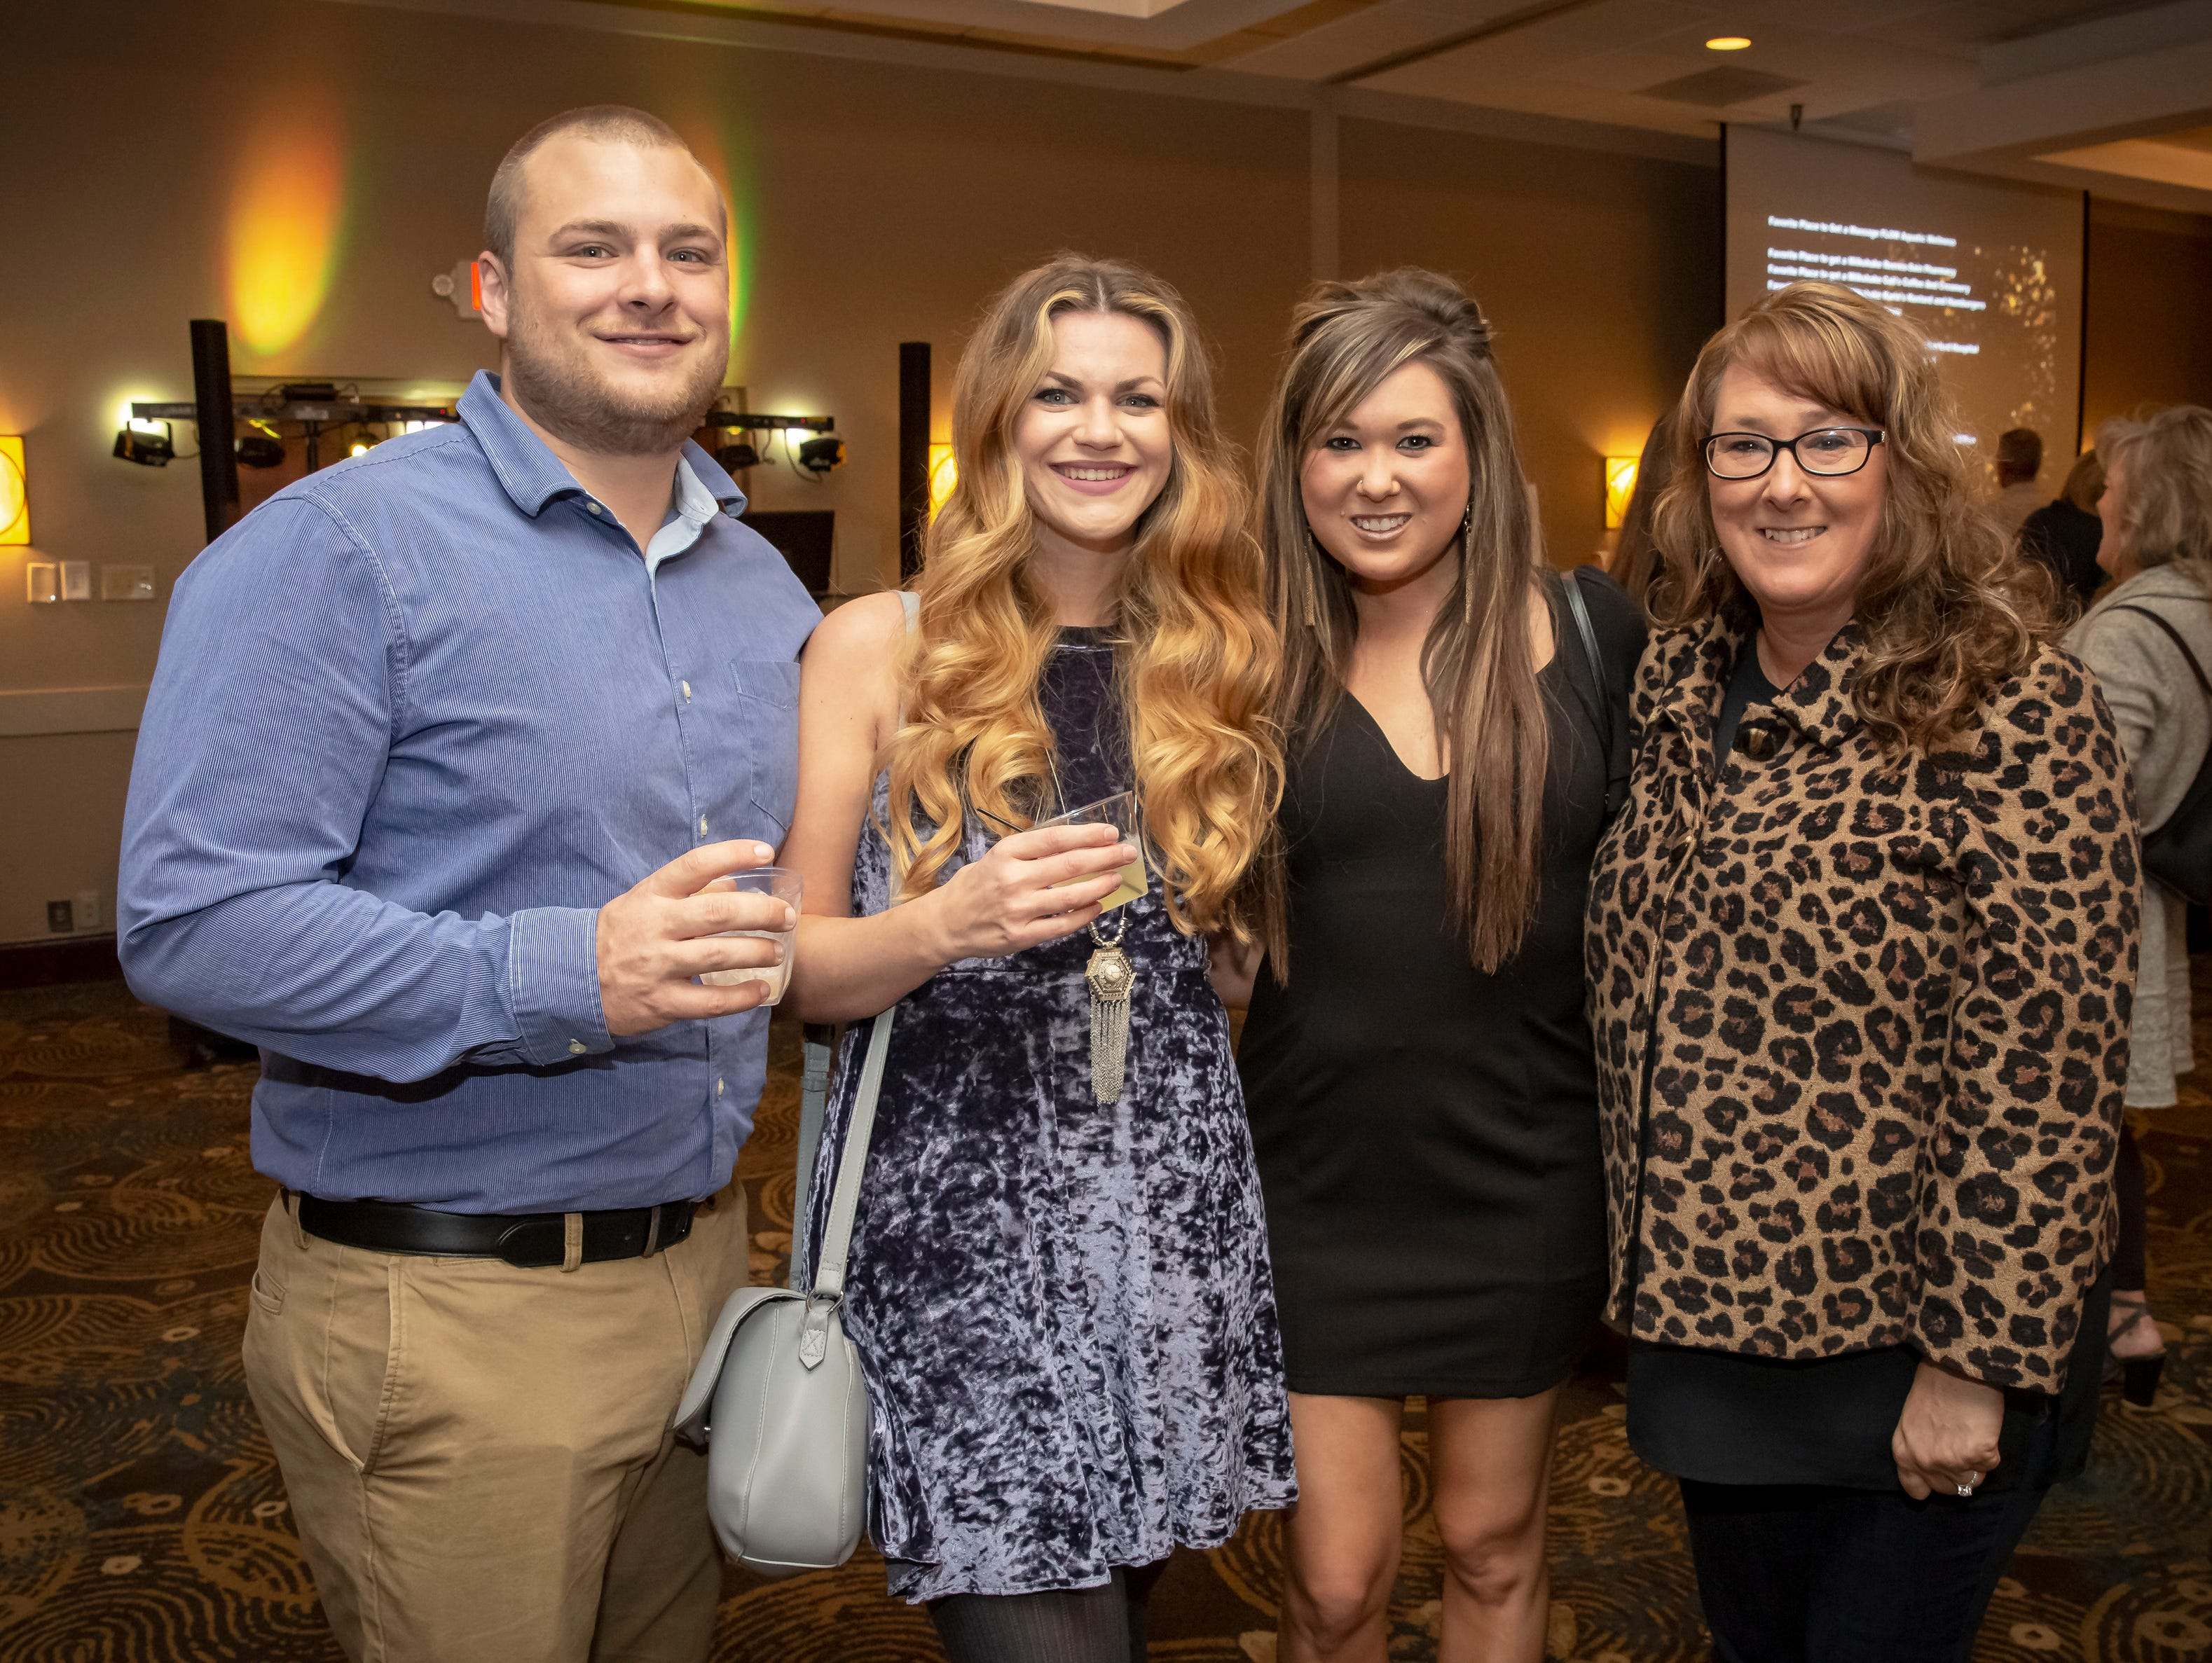 Gage Estes, Kristina Estes, Ashley Lewis and Carla Lewis at the 24th annual Ruthie awards held at DoubleTree on Old Fort Parkway.